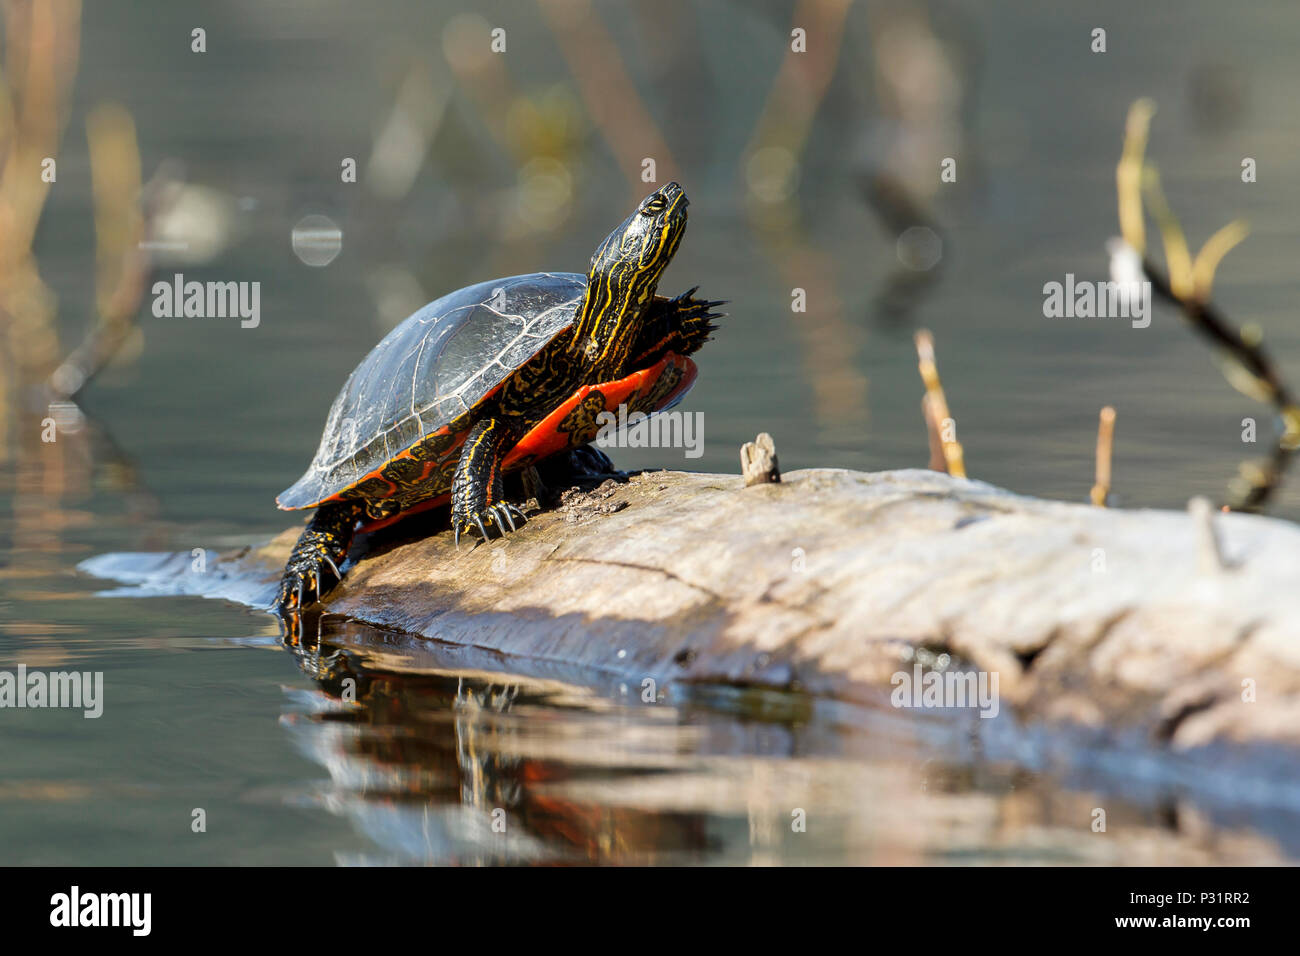 An America Painted turtle (chrysemys picta) basks in the sun on a log on Fernan Lake in Idaho. - Stock Image